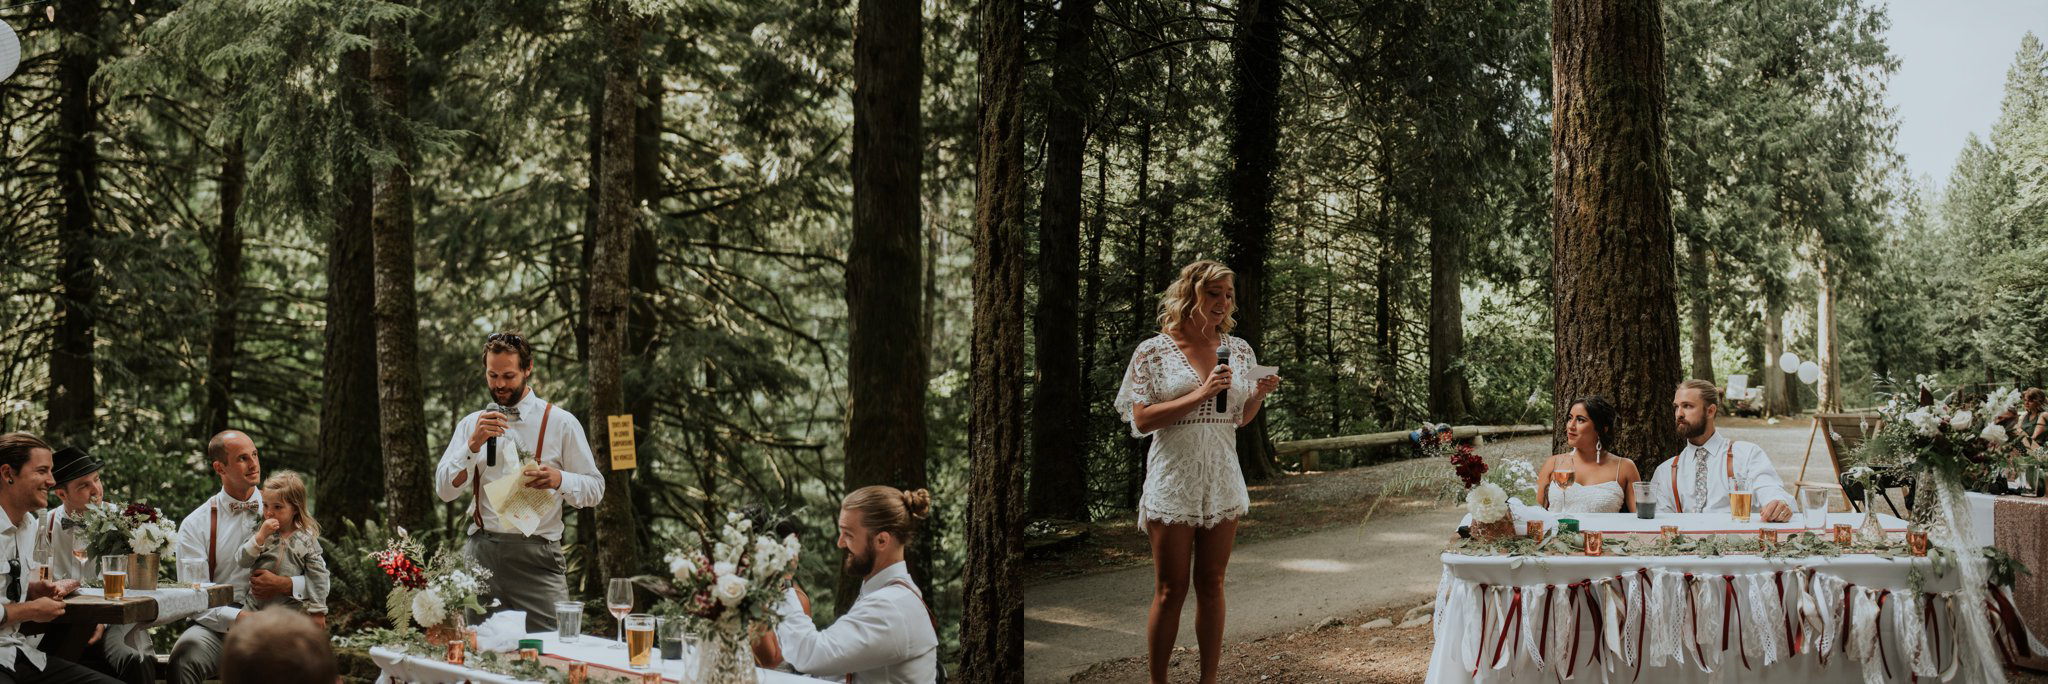 intimate-boho-campfire-wedding-shangri-la-on-the-green-seattle-wedding-photographer-caitlyn-nikula-photography-105.jpg